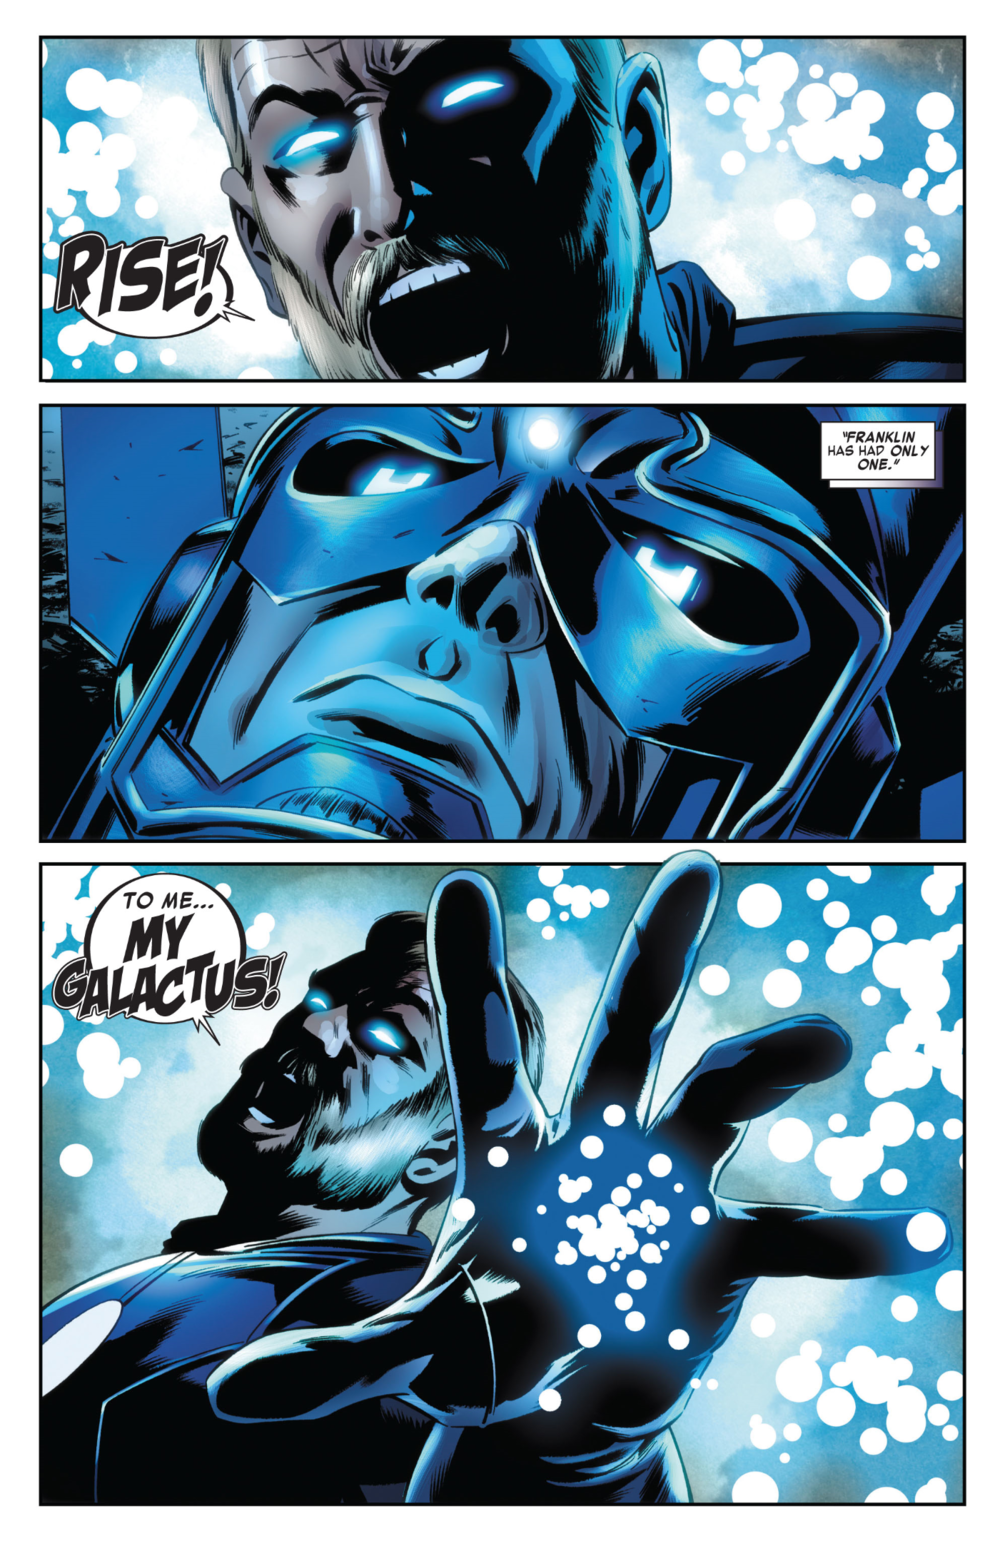 Fantastic Four #604, art by Steve Epting, Rick Maygar, and Paul Mounts